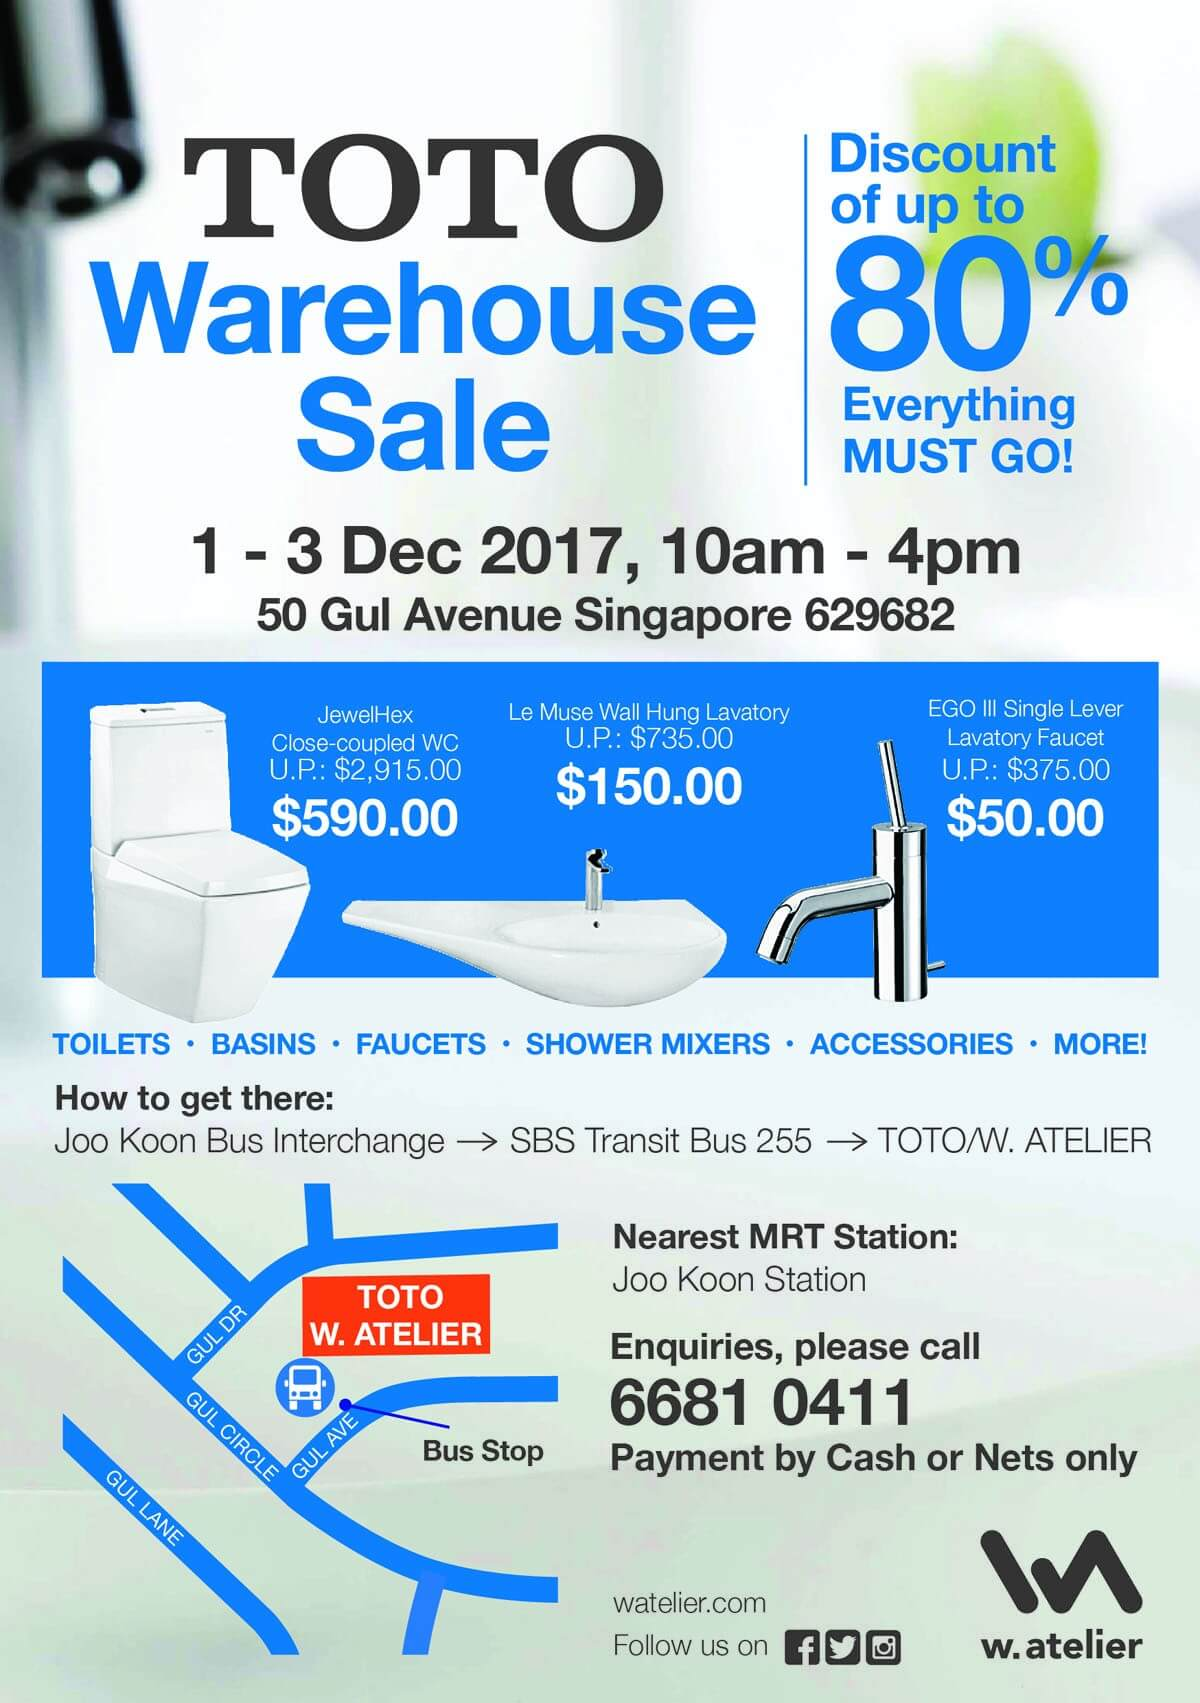 TOTO Warehouse Sale By w.atelier | LoopMe Singapore